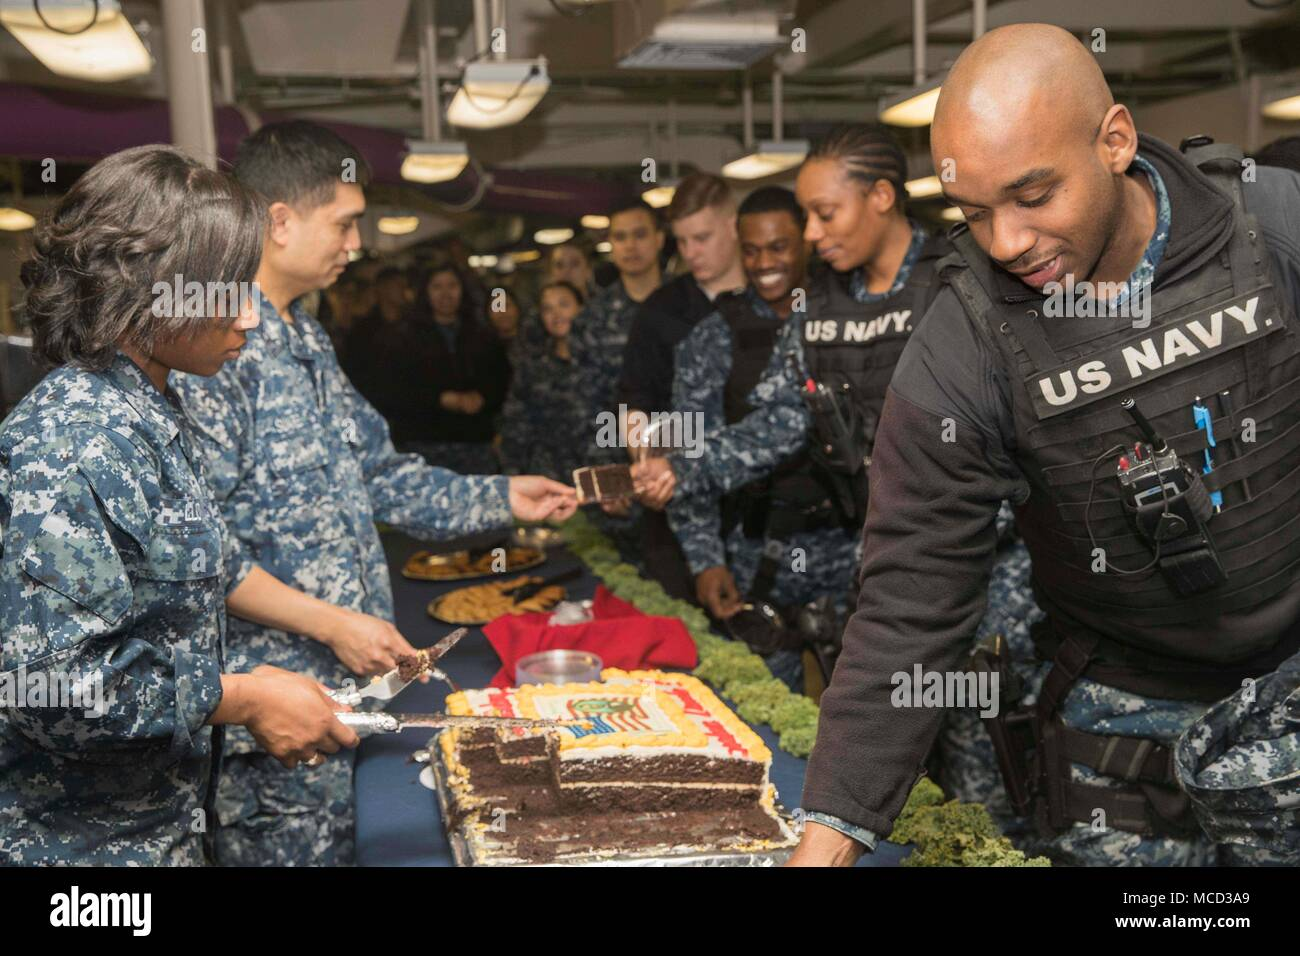 180212-N-YP246-0063 NORFOLK (Feb. 12, 2018) Sailors celebrate Abraham Lincoln's birthday aboard the Nimitz-class aircraft carrier USS Abraham Lincoln (CVN 72). (U.S. Navy photo by Mass Communication Specialist Seaman Darcy McAtee/Released) - Stock Image